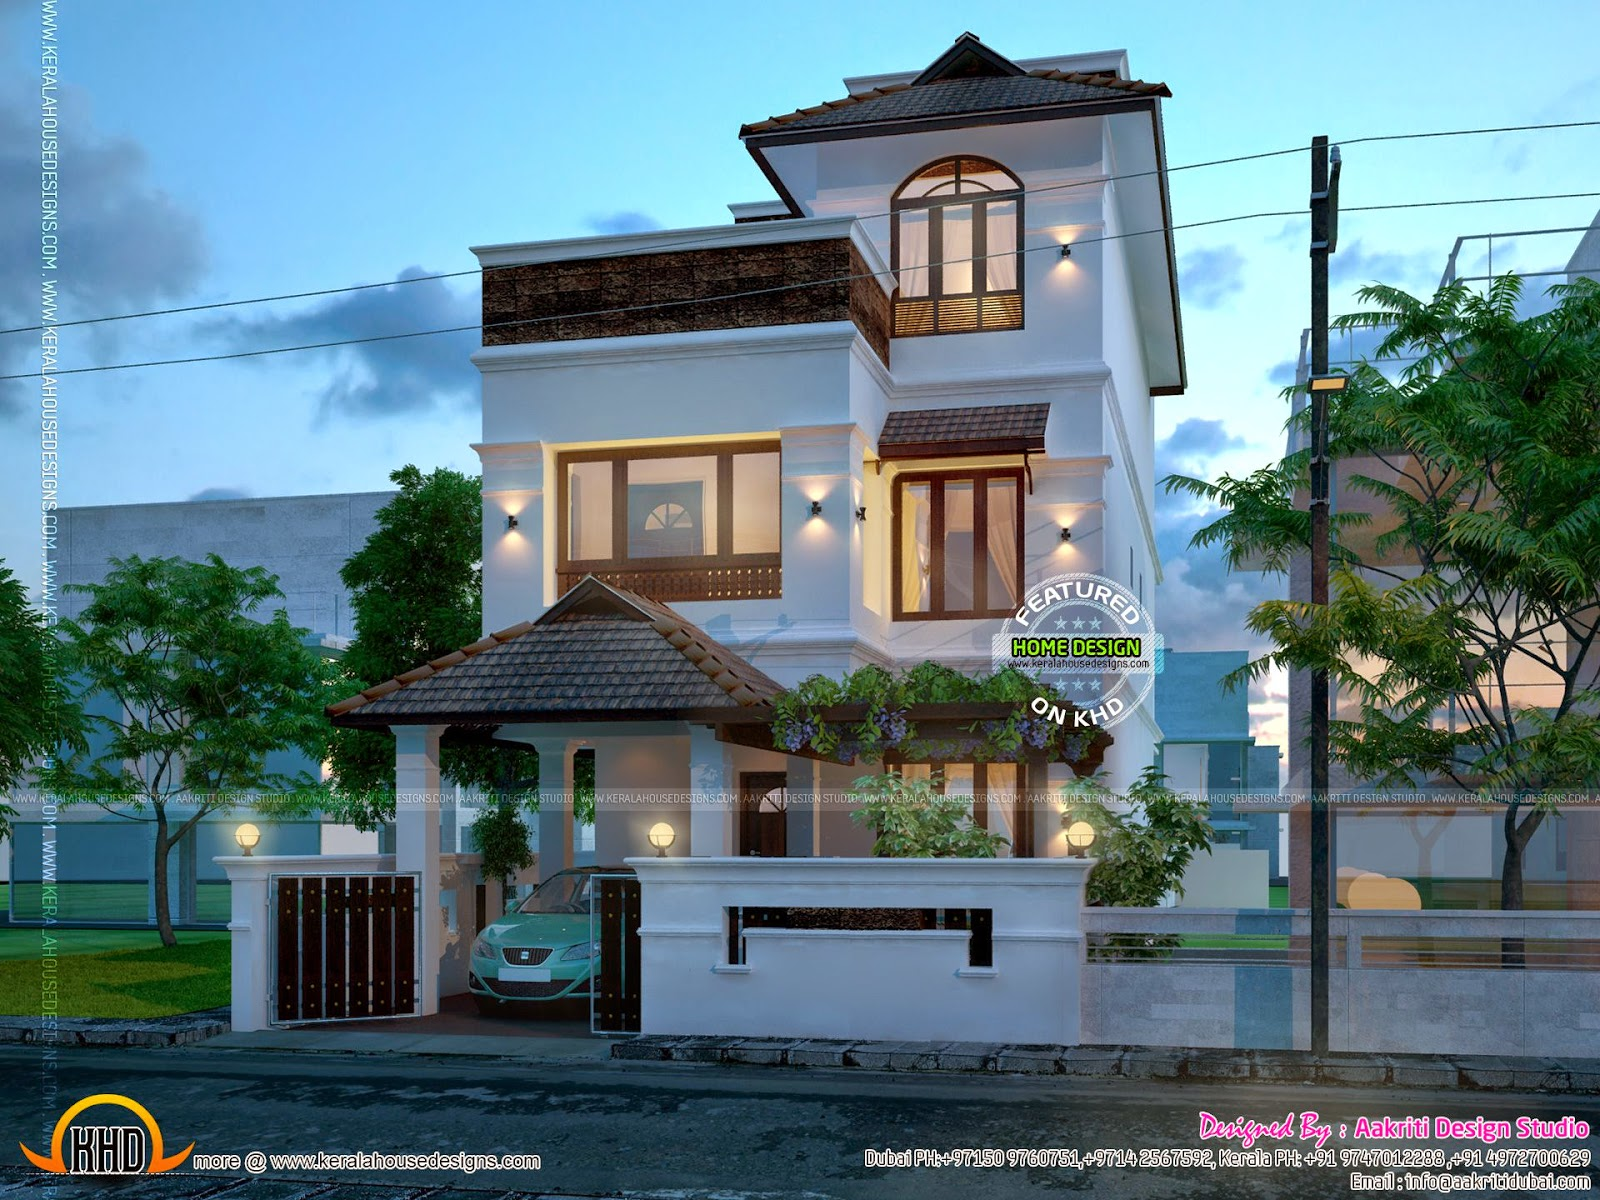 New house design kerala home design and floor plans for New house design